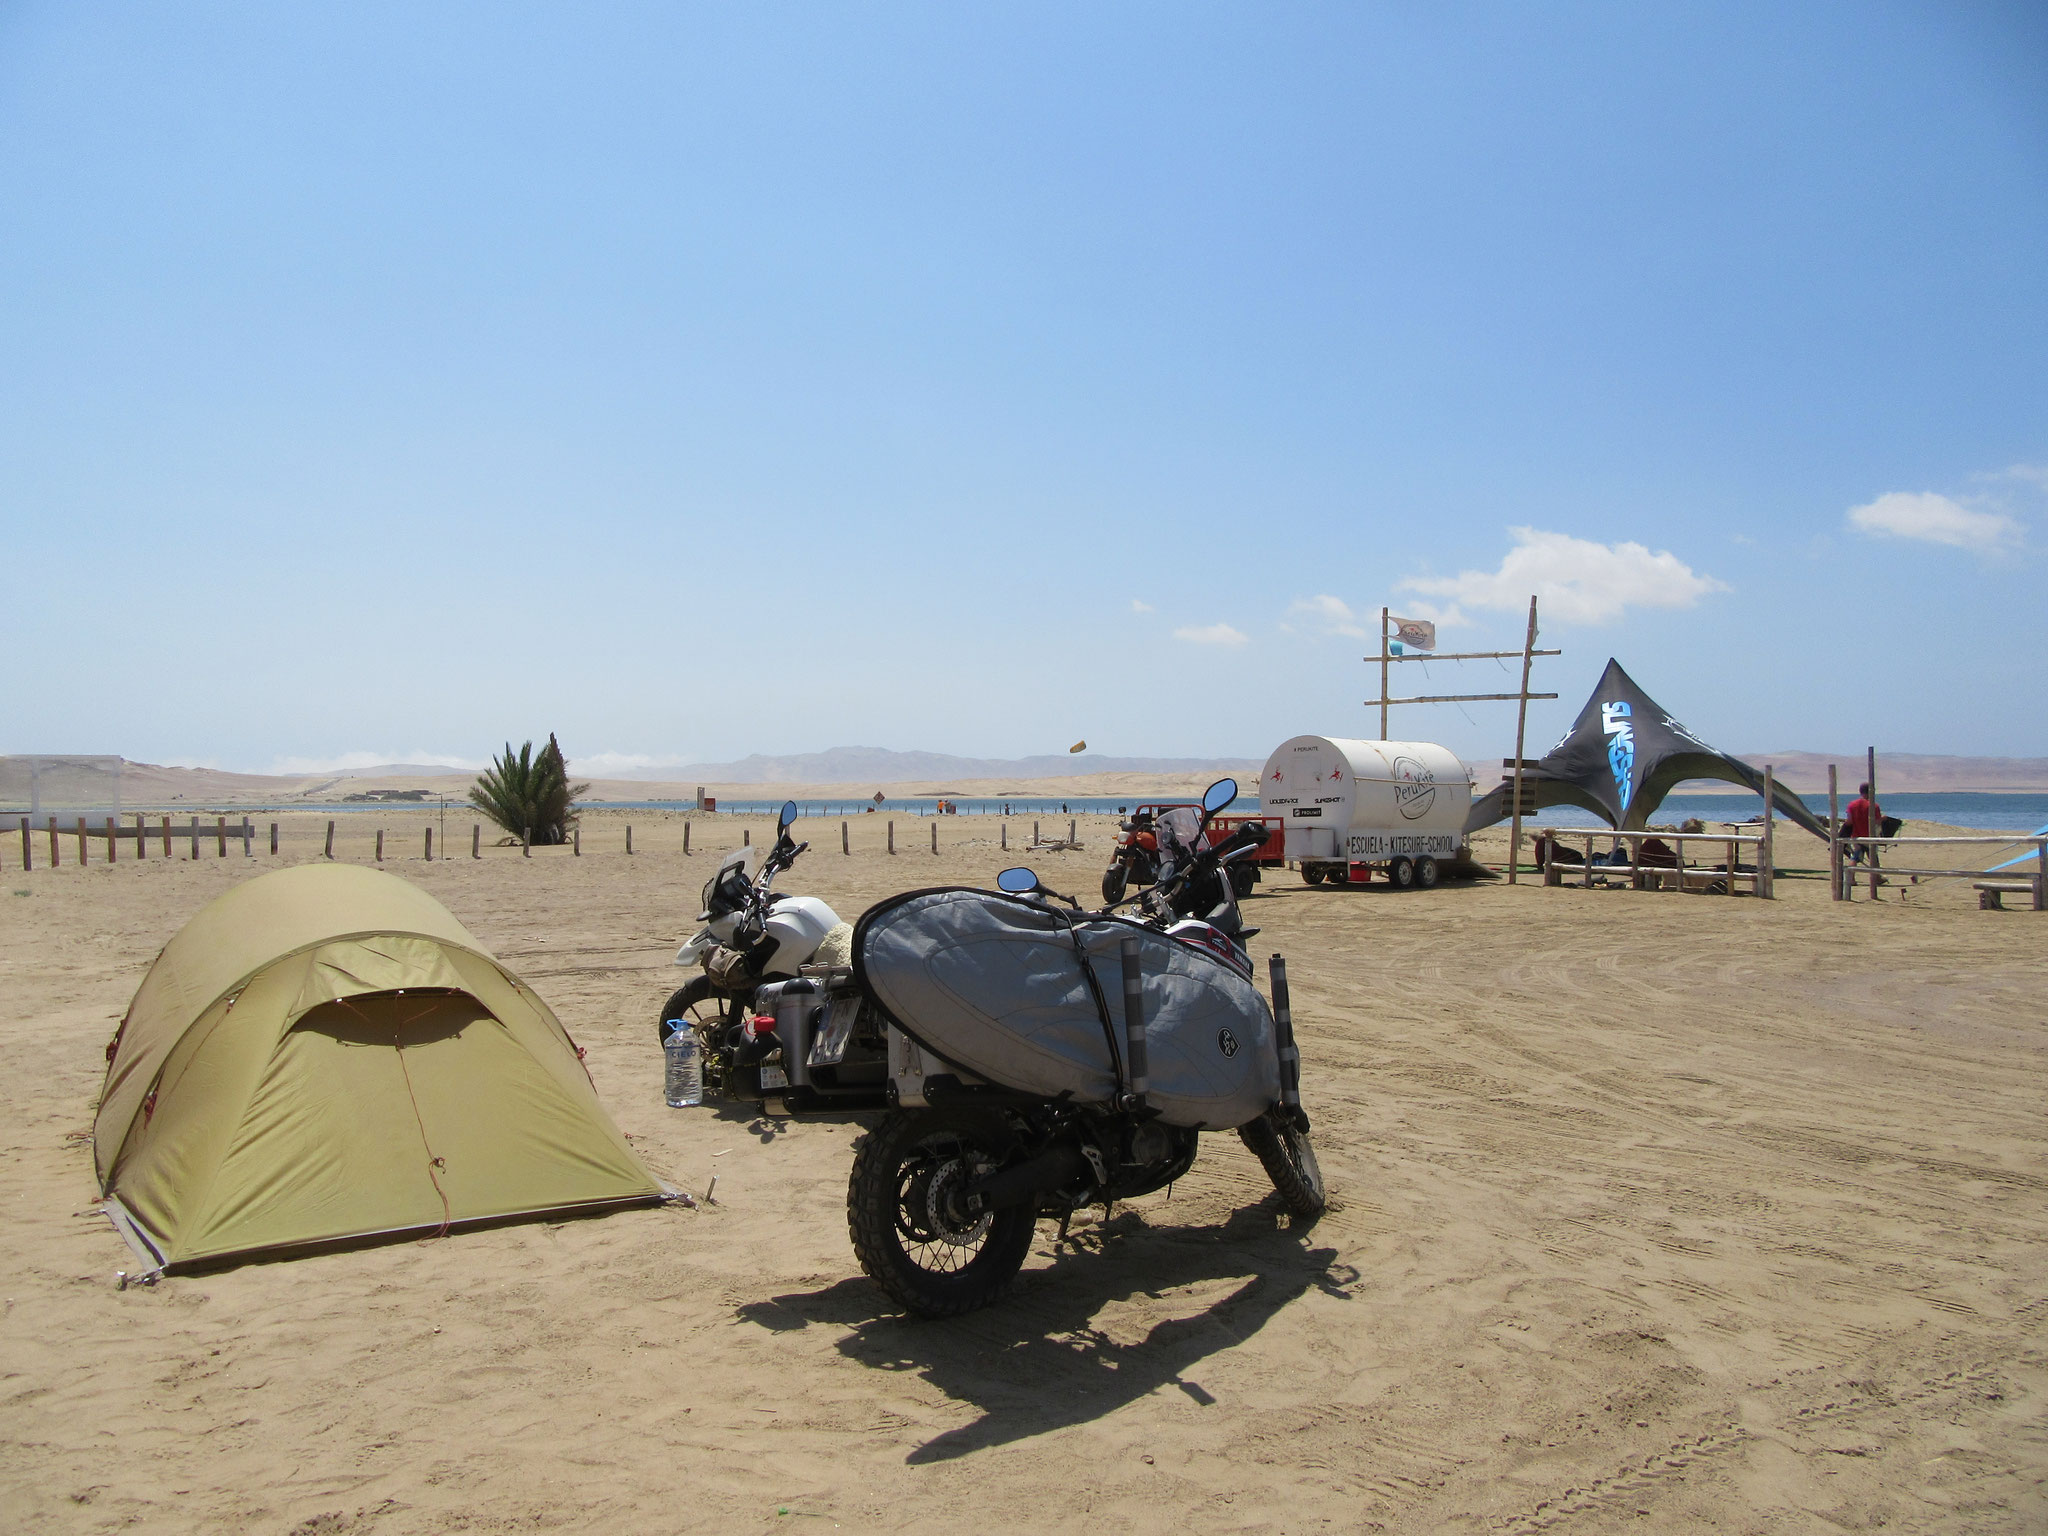 Camping at the kitespot in Paracas